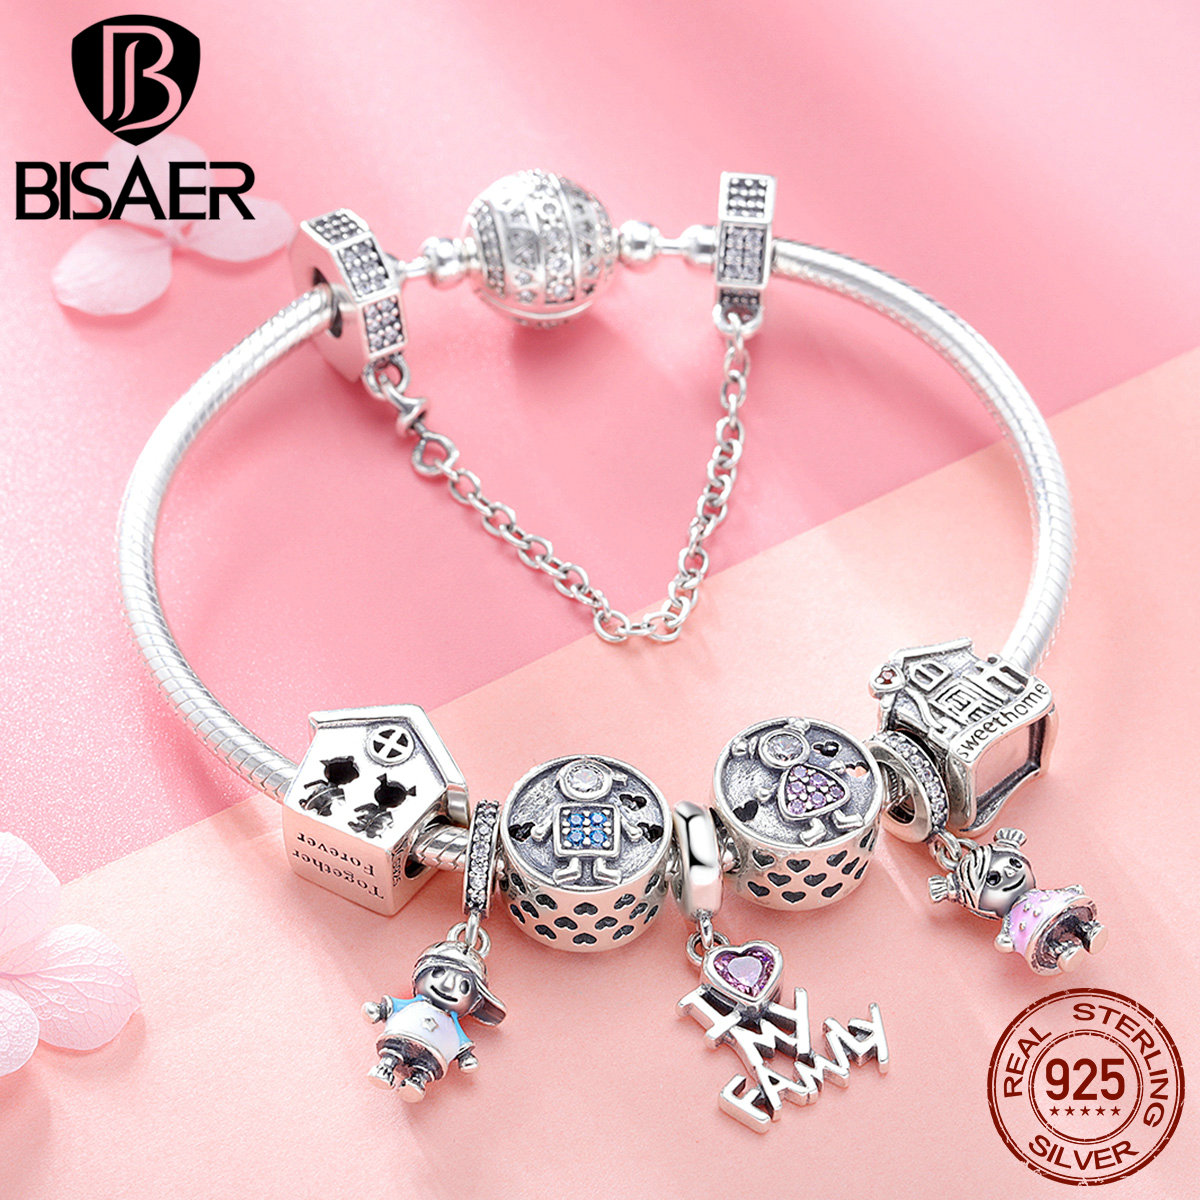 BISAER 9pcs 925 Sterling Silver Boy And Girl House Family Collection Women Silver Brand Charm Bracelet Fashion Bangle GXB810 bisaer 7pcs 925 sterling silver heart key and locket heart pendant brand charm bracelet for women wedding silver bangle gxb811